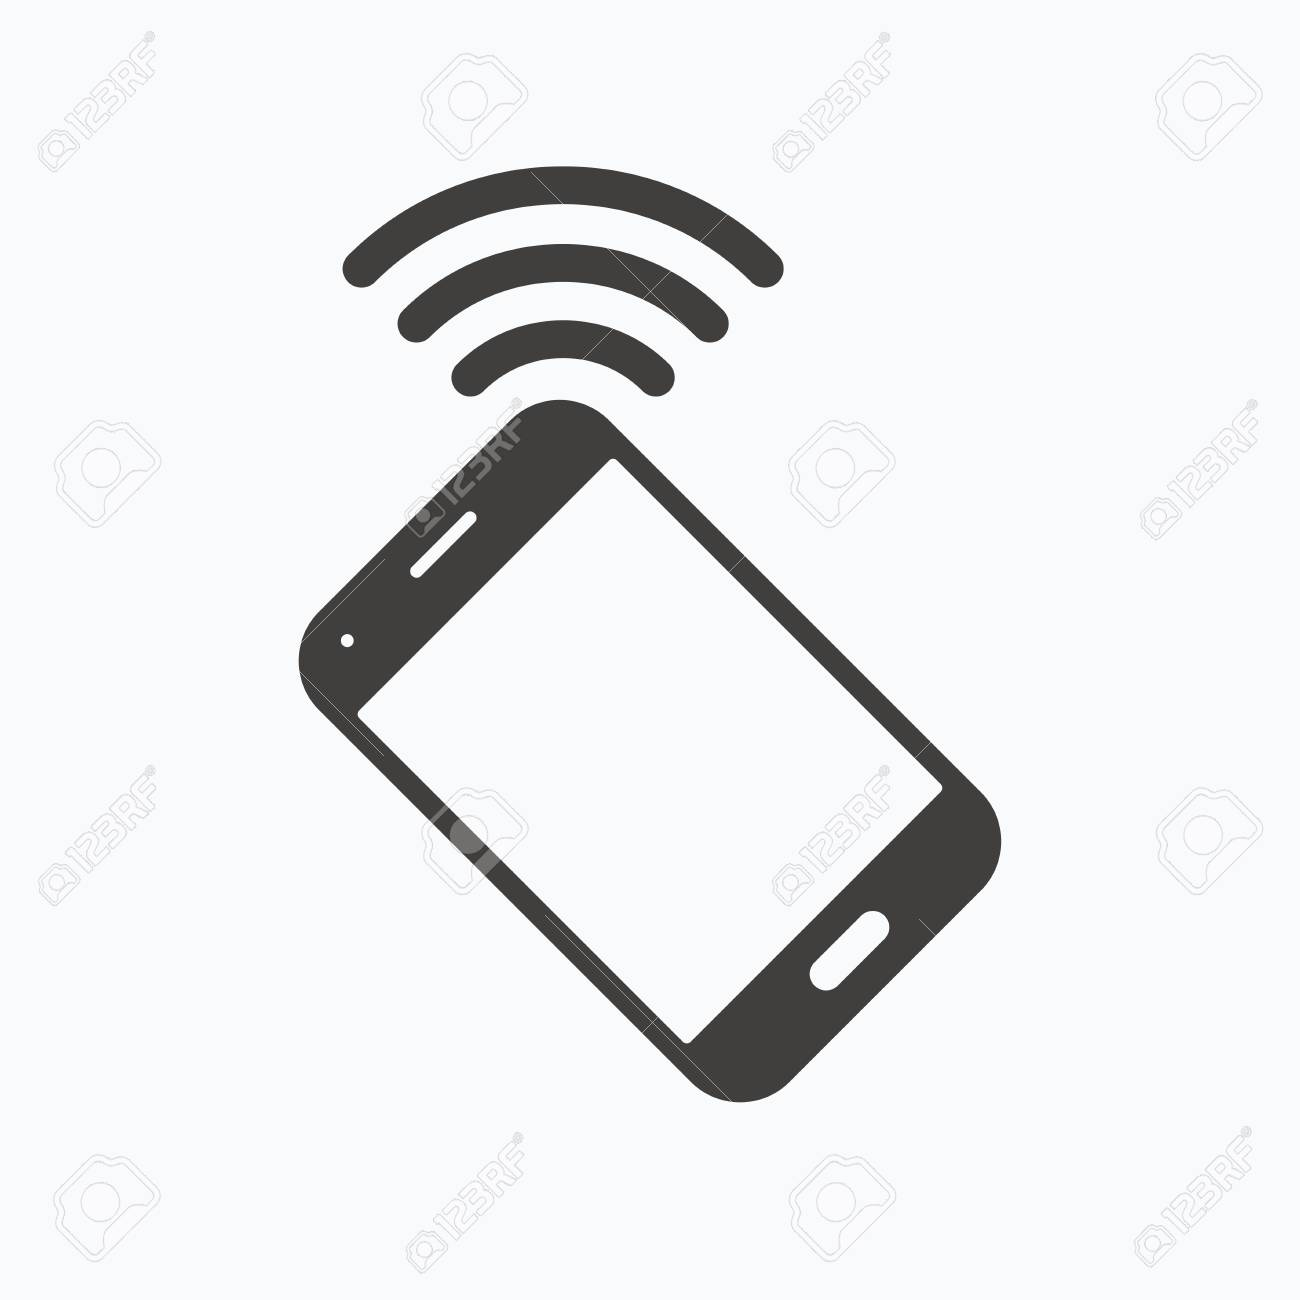 Cell Phone Icon >> Cellphone Icon Mobile Phone Communication Symbol Gray Flat